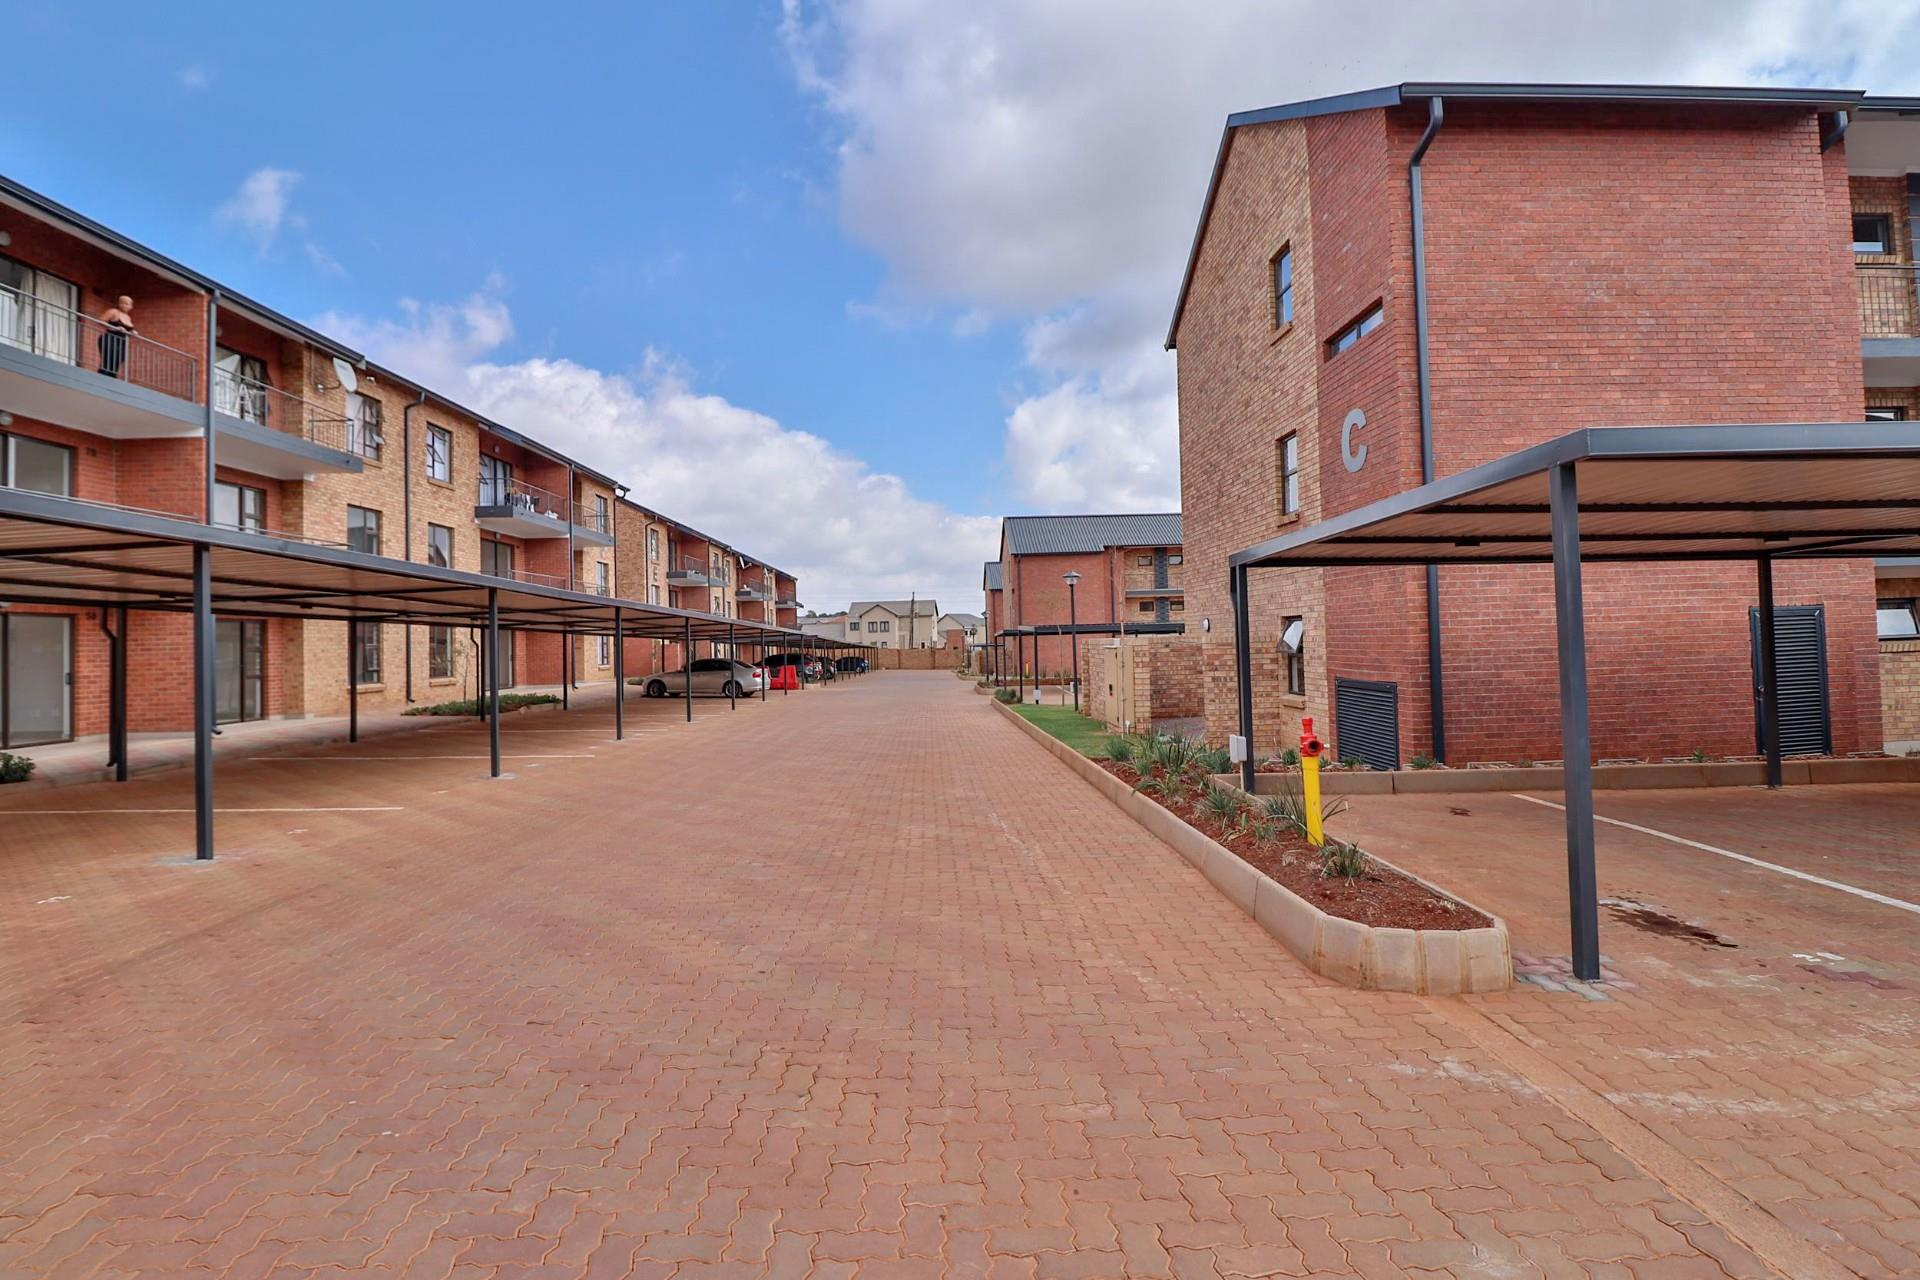 2 Bedroom Apartment / Flat To Rent in Mooikloof